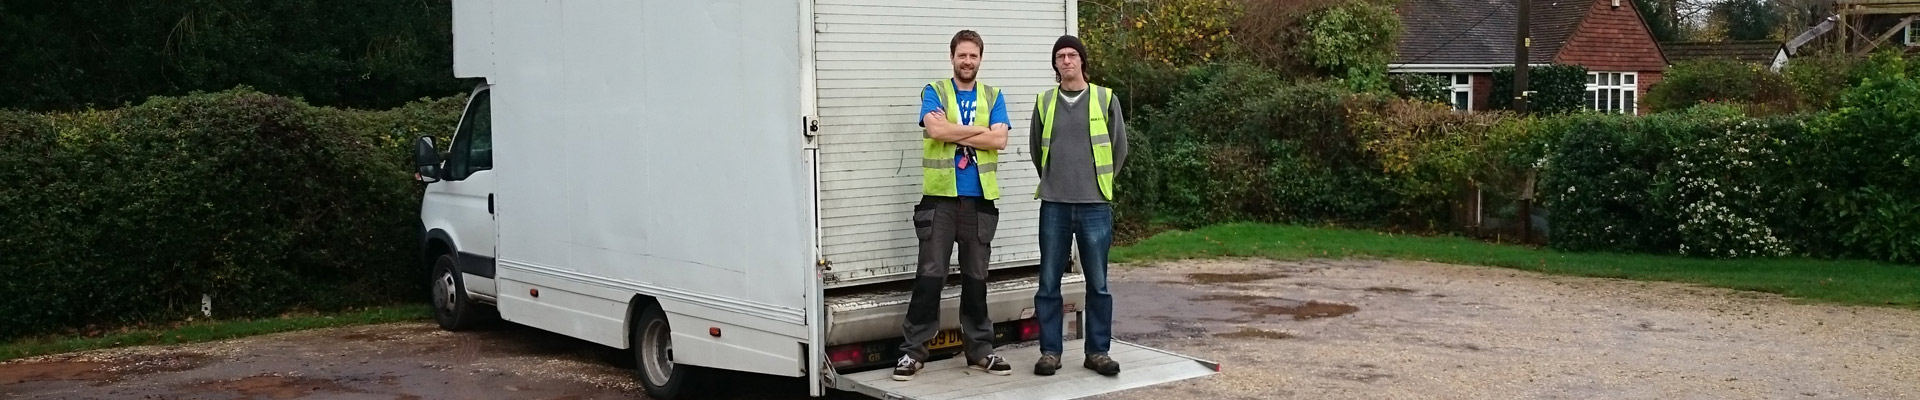 Sledges of Southampton Man and van services was established in 2013. SOS now has a team of four and run by Johnny and business partner Dave.